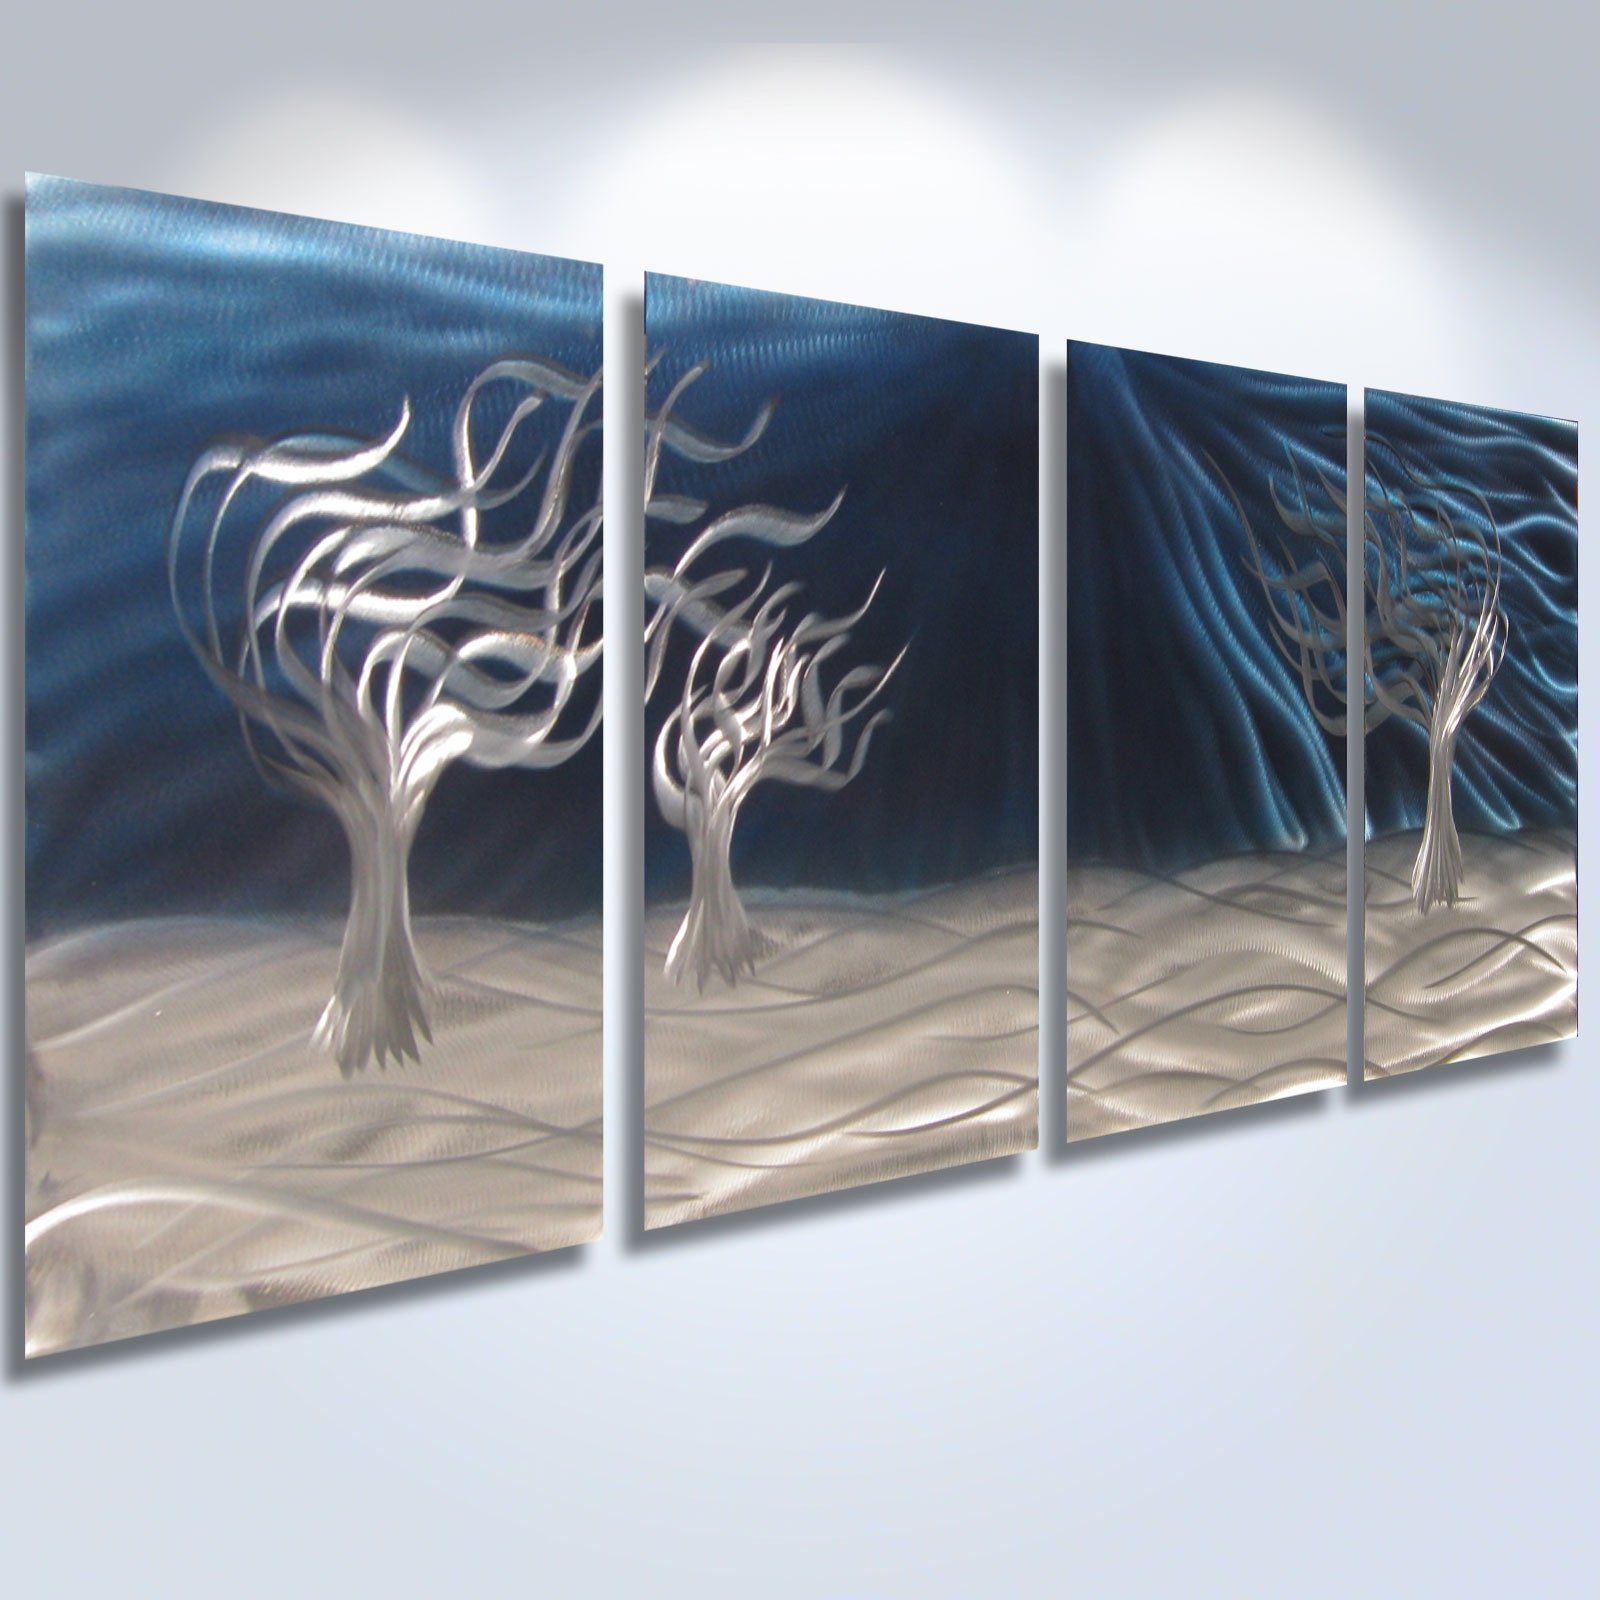 3 Trees Blue – Abstract Metal Wall Art Contemporary Modern Decor Regarding Well Known Abstract Metal Wall Art (View 3 of 15)